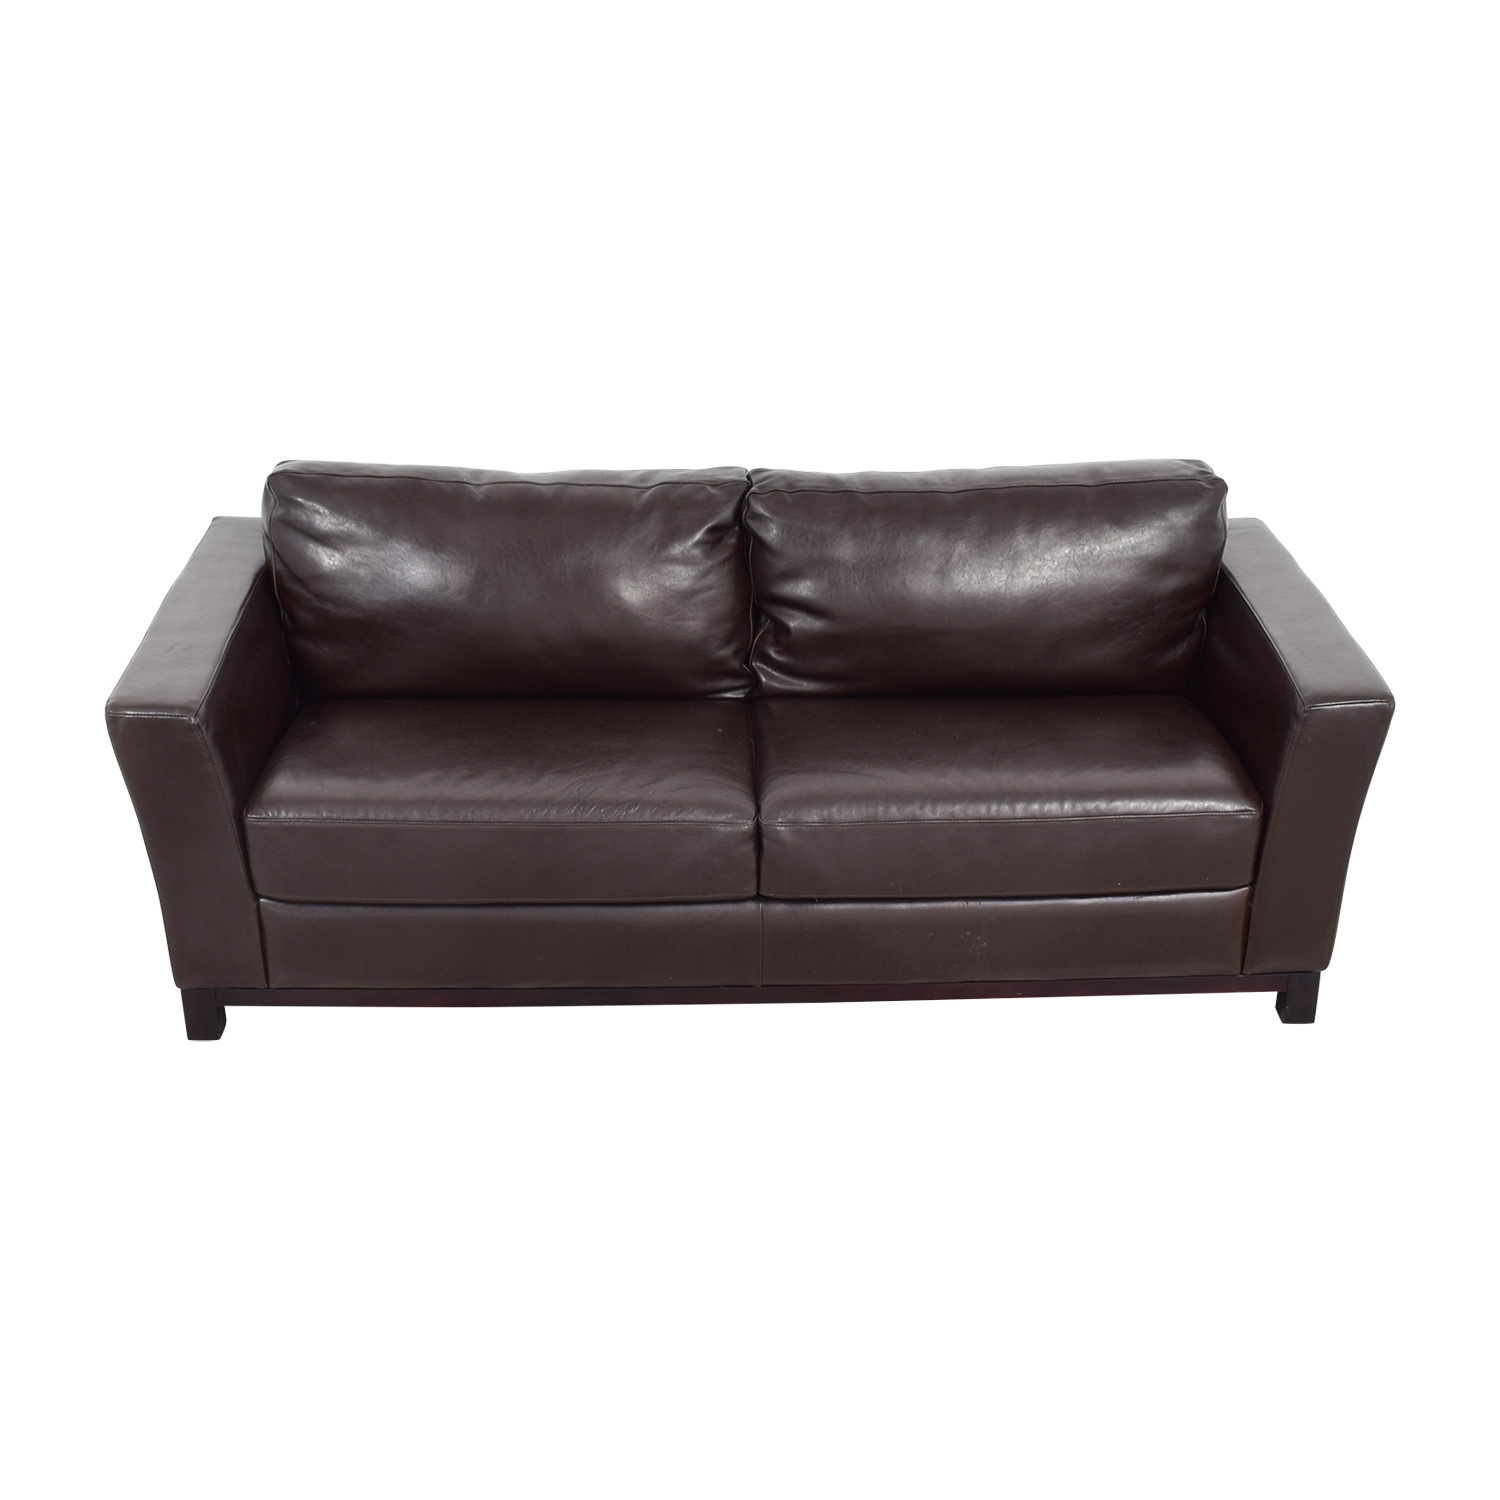 Interio Sofa Caddy Furniture Sofa Online U Shaped Leather Sectional Flexible Arm Tray